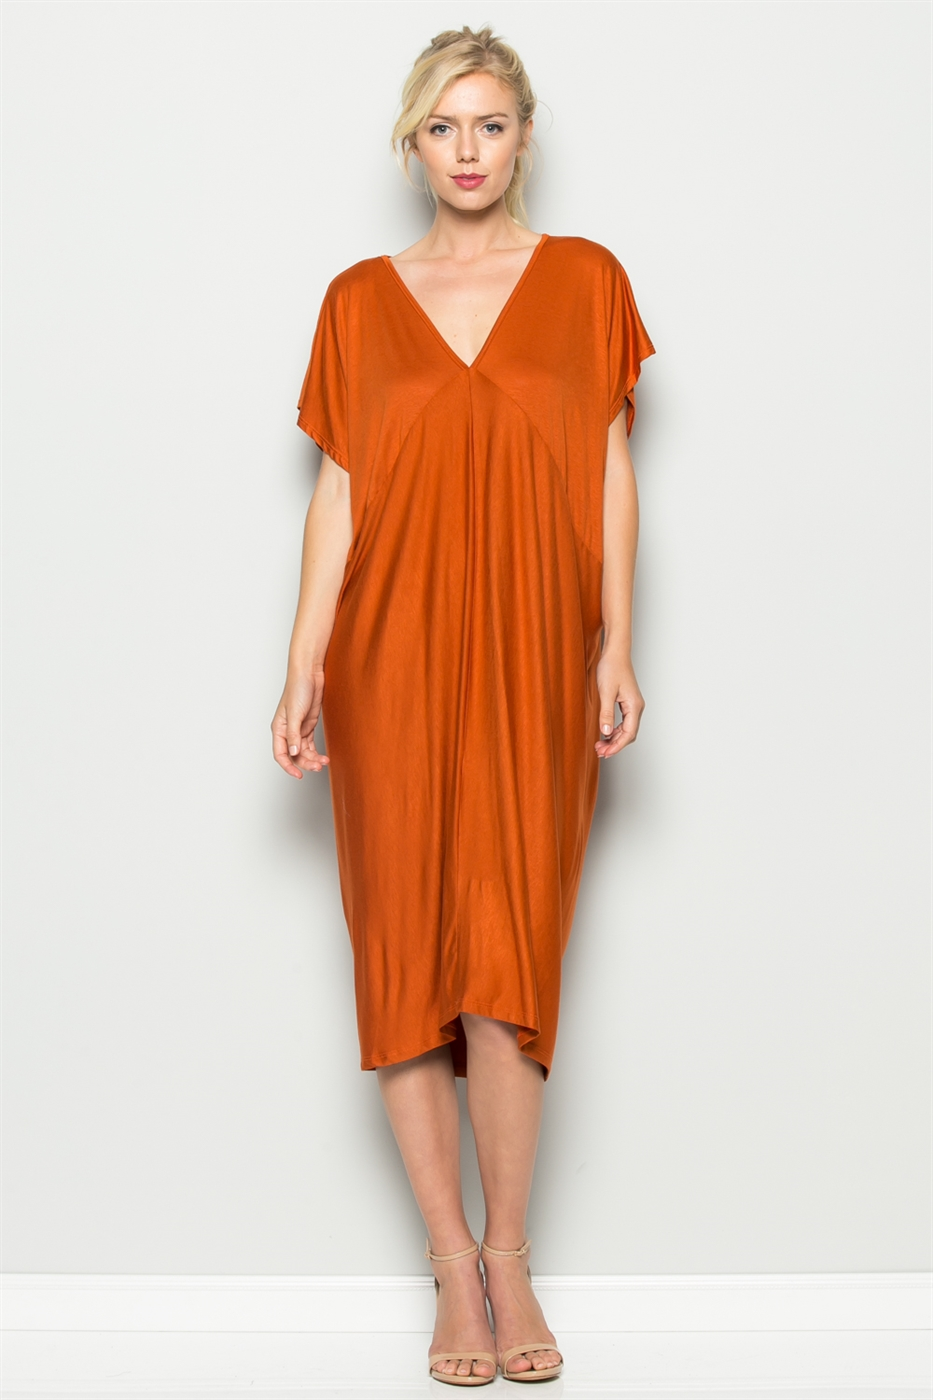 V-NECK MIDI DRESS - orangeshine.com